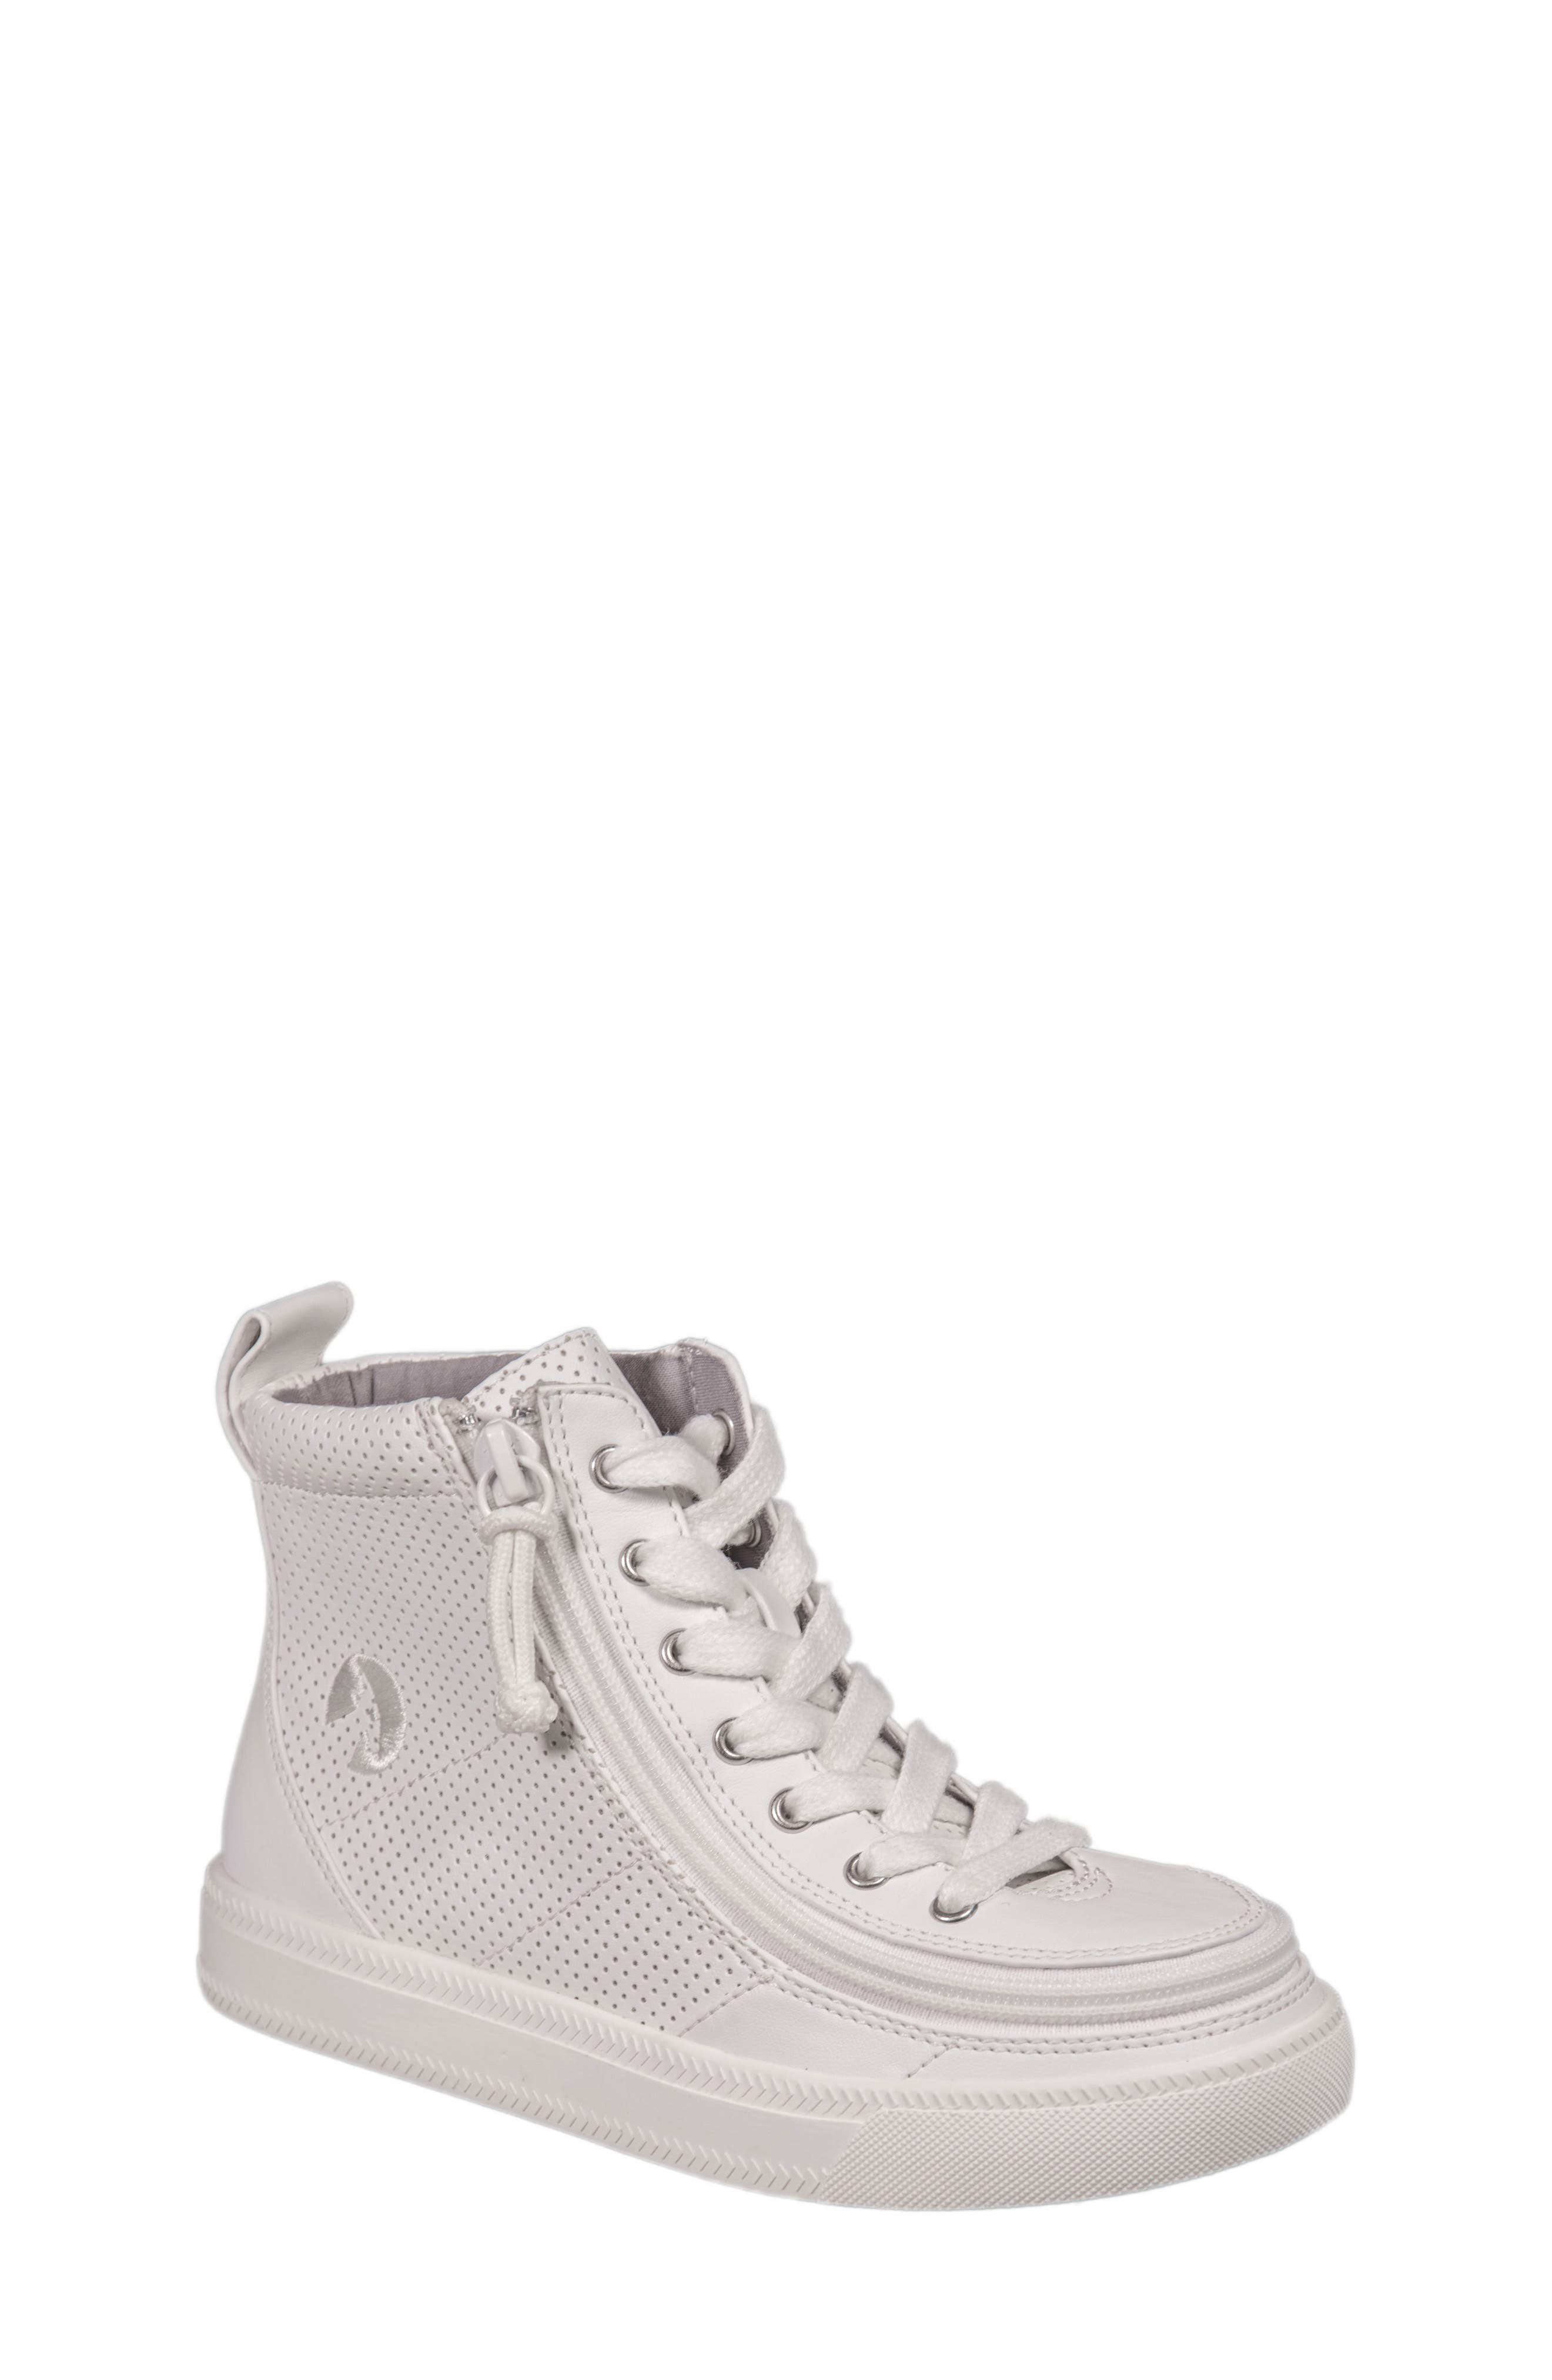 Zip Around Perforated High Top Sneaker,                         Main,                         color, White Perforated